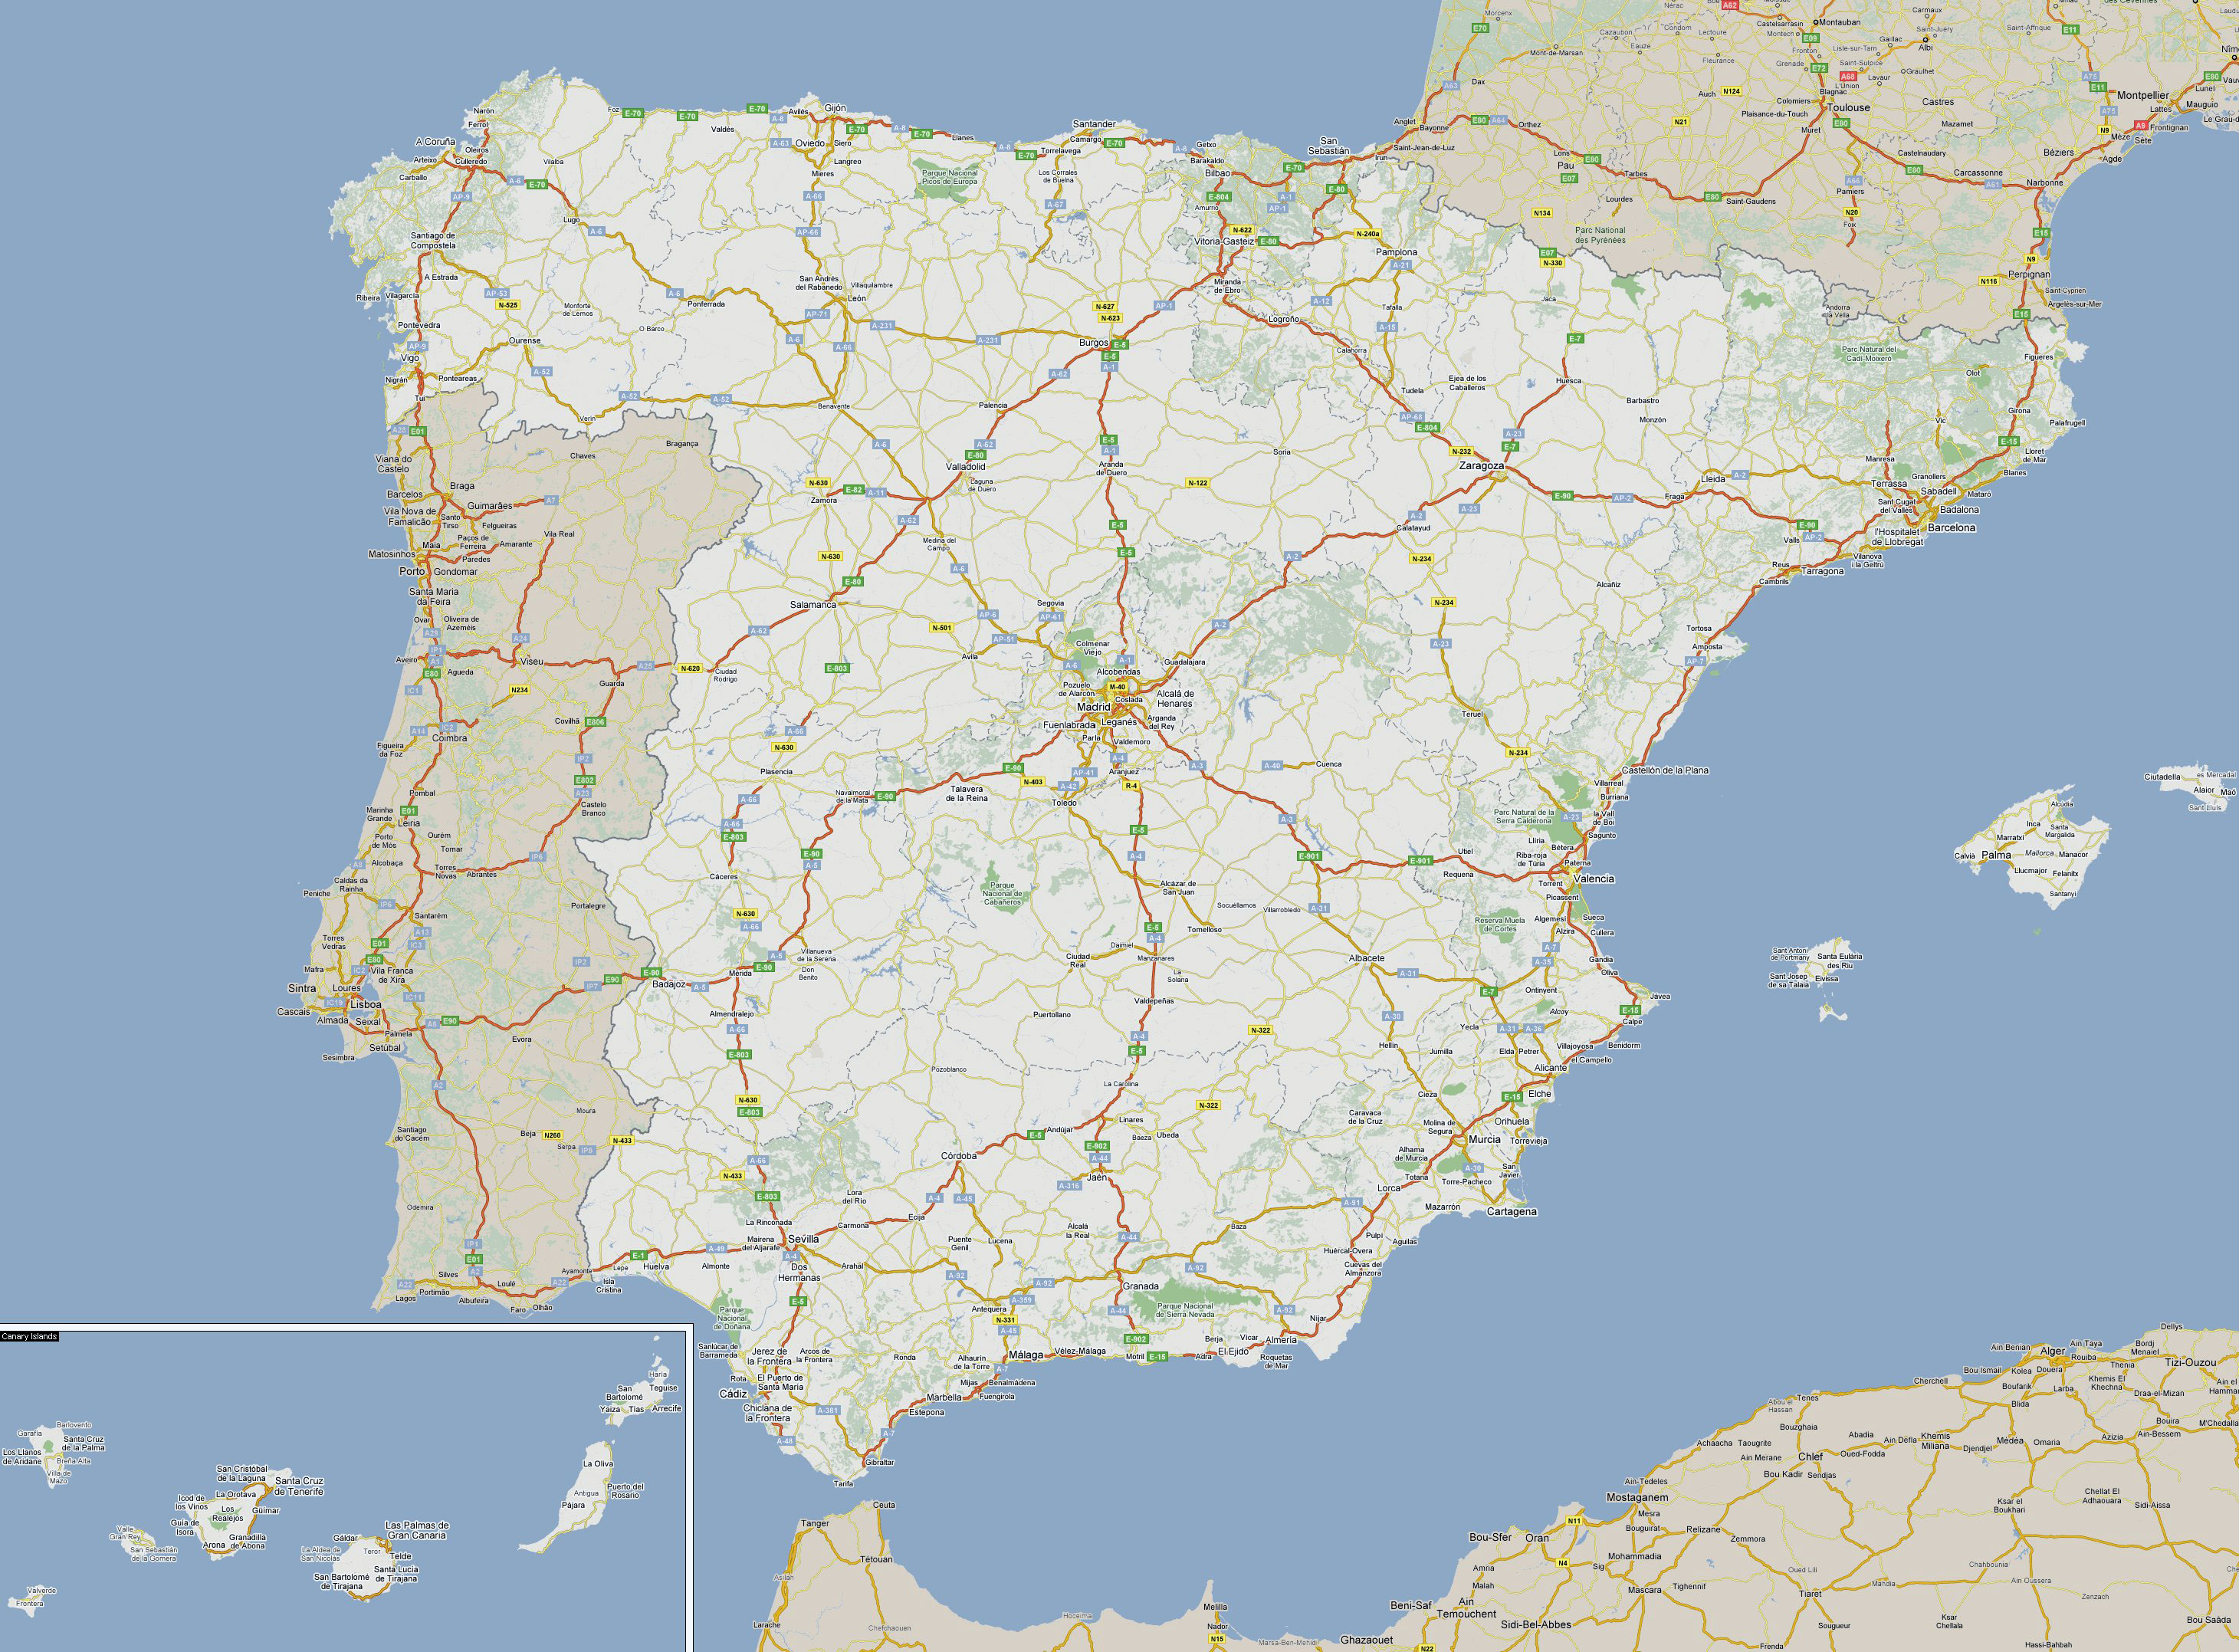 Map Of Portugal And Spain.Large Detailed Roads Map Of Spain And Portugal Vidiani Com Maps